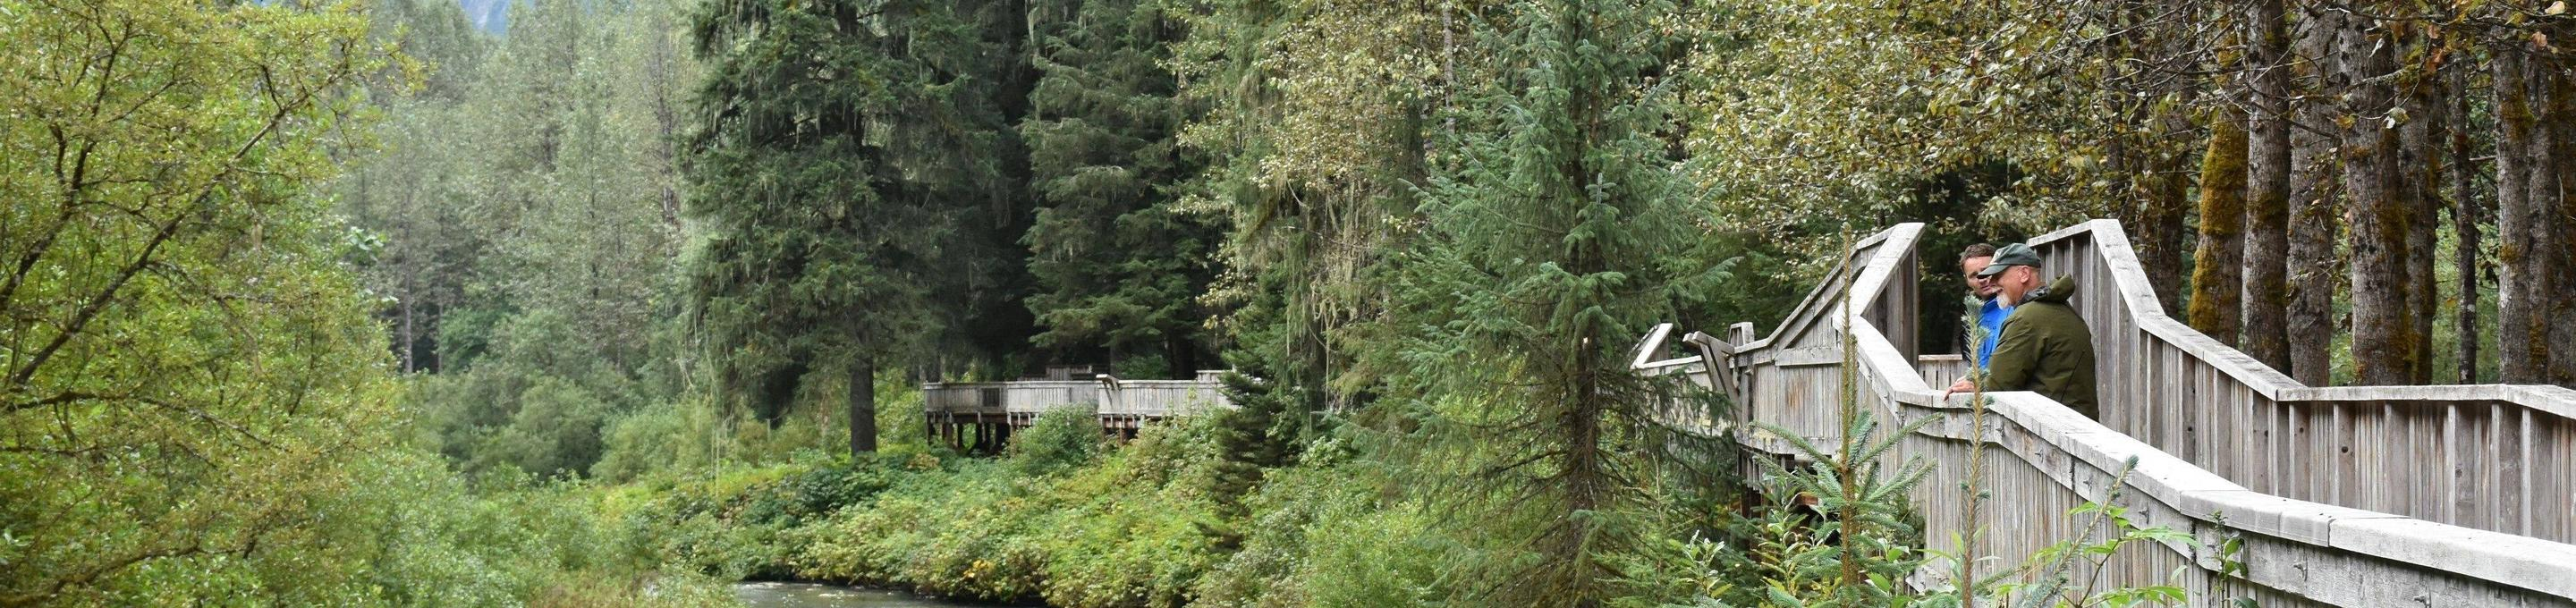 A ranger and visitor stand along the boardwalk at Fish Creek.